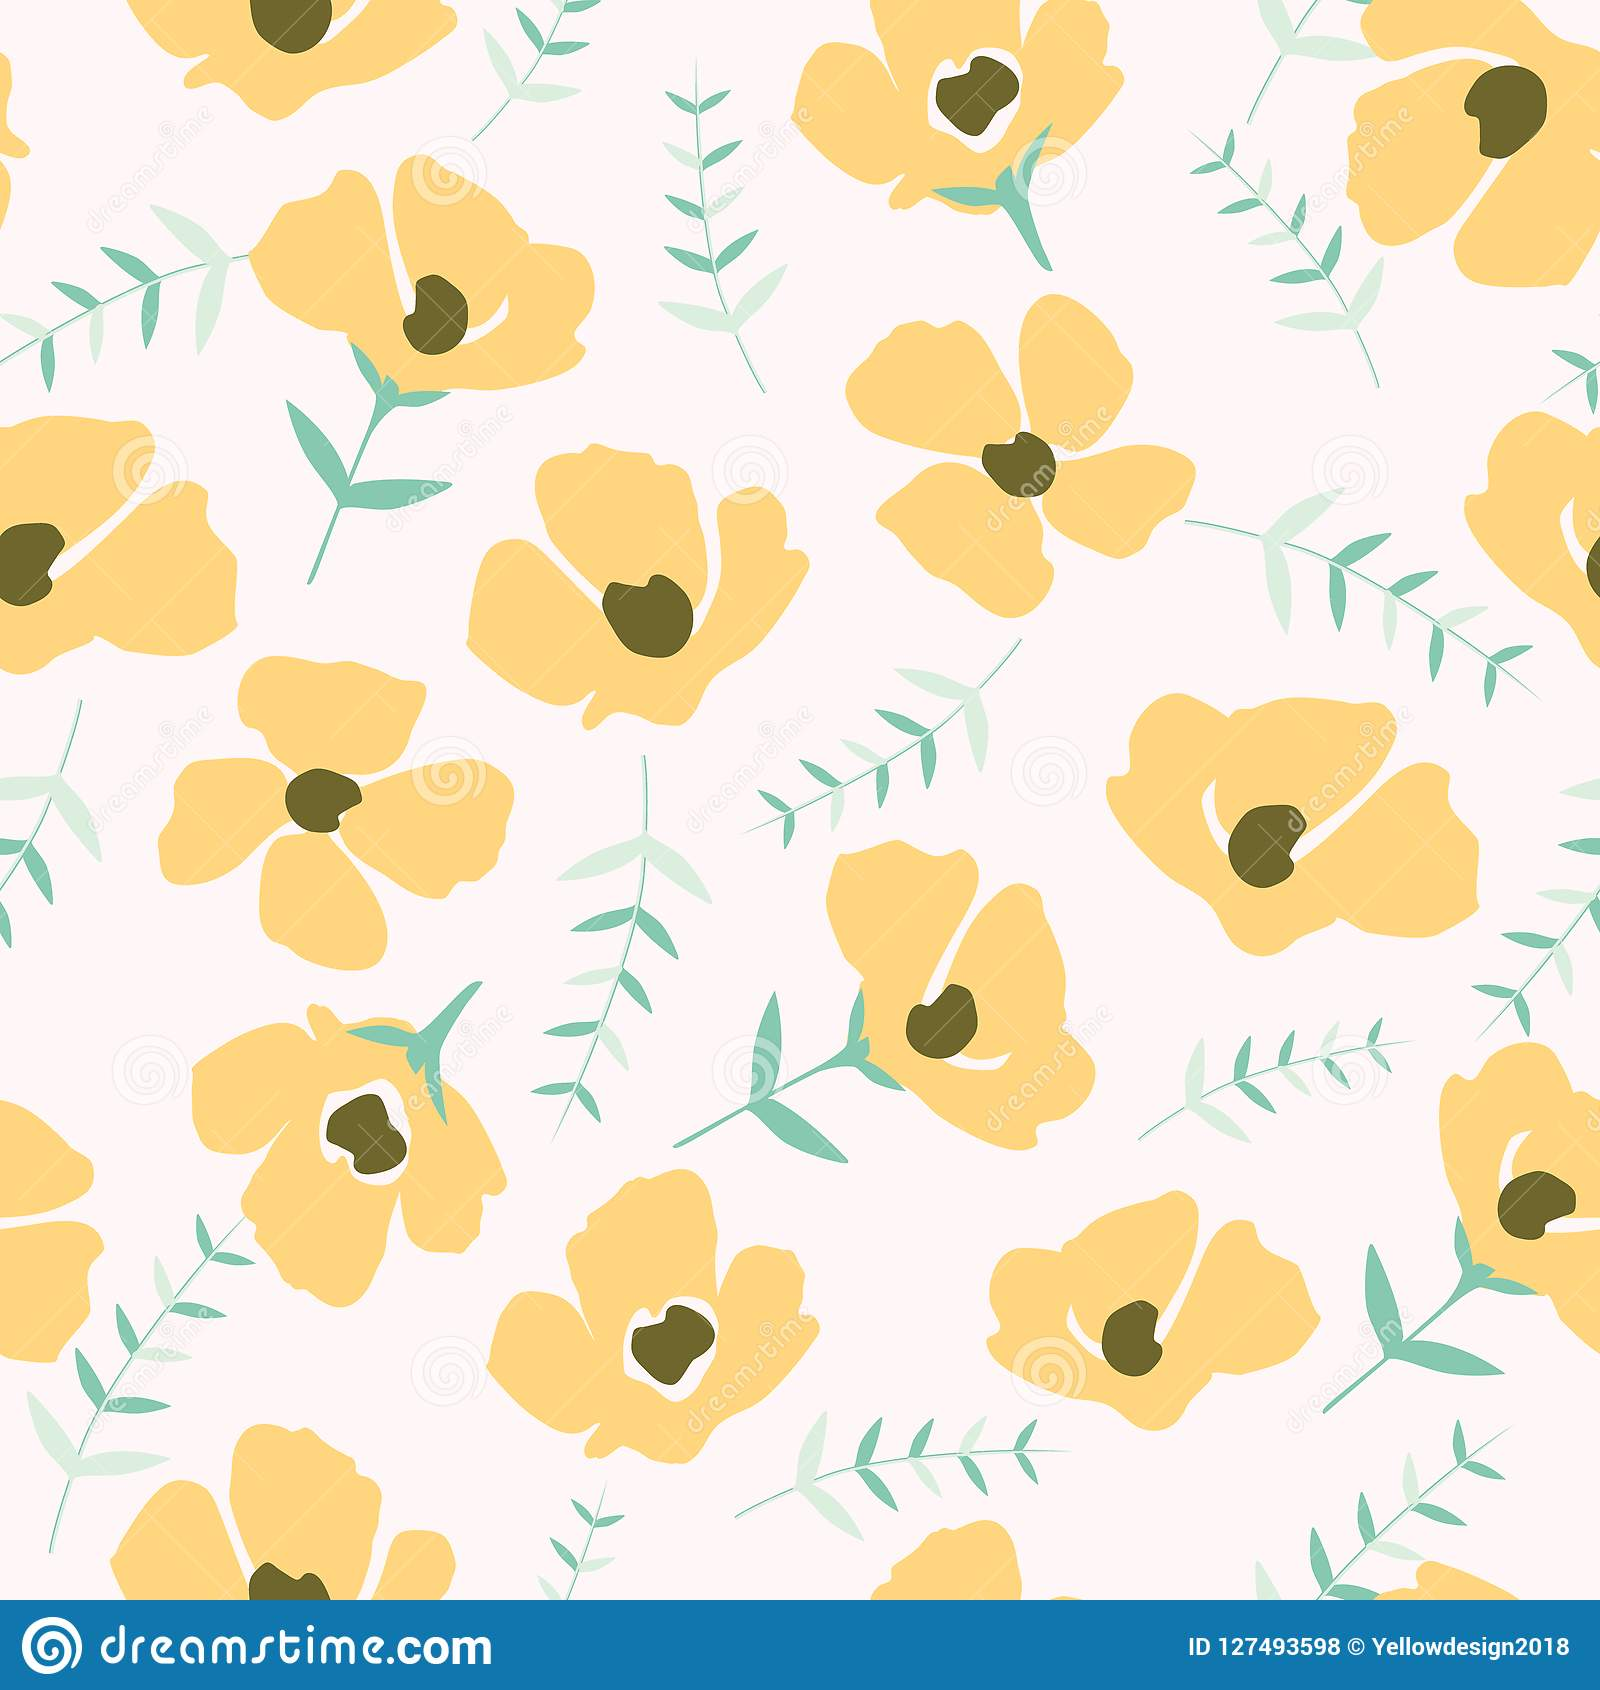 Floral pattern in the small flower.Seamless vector texture